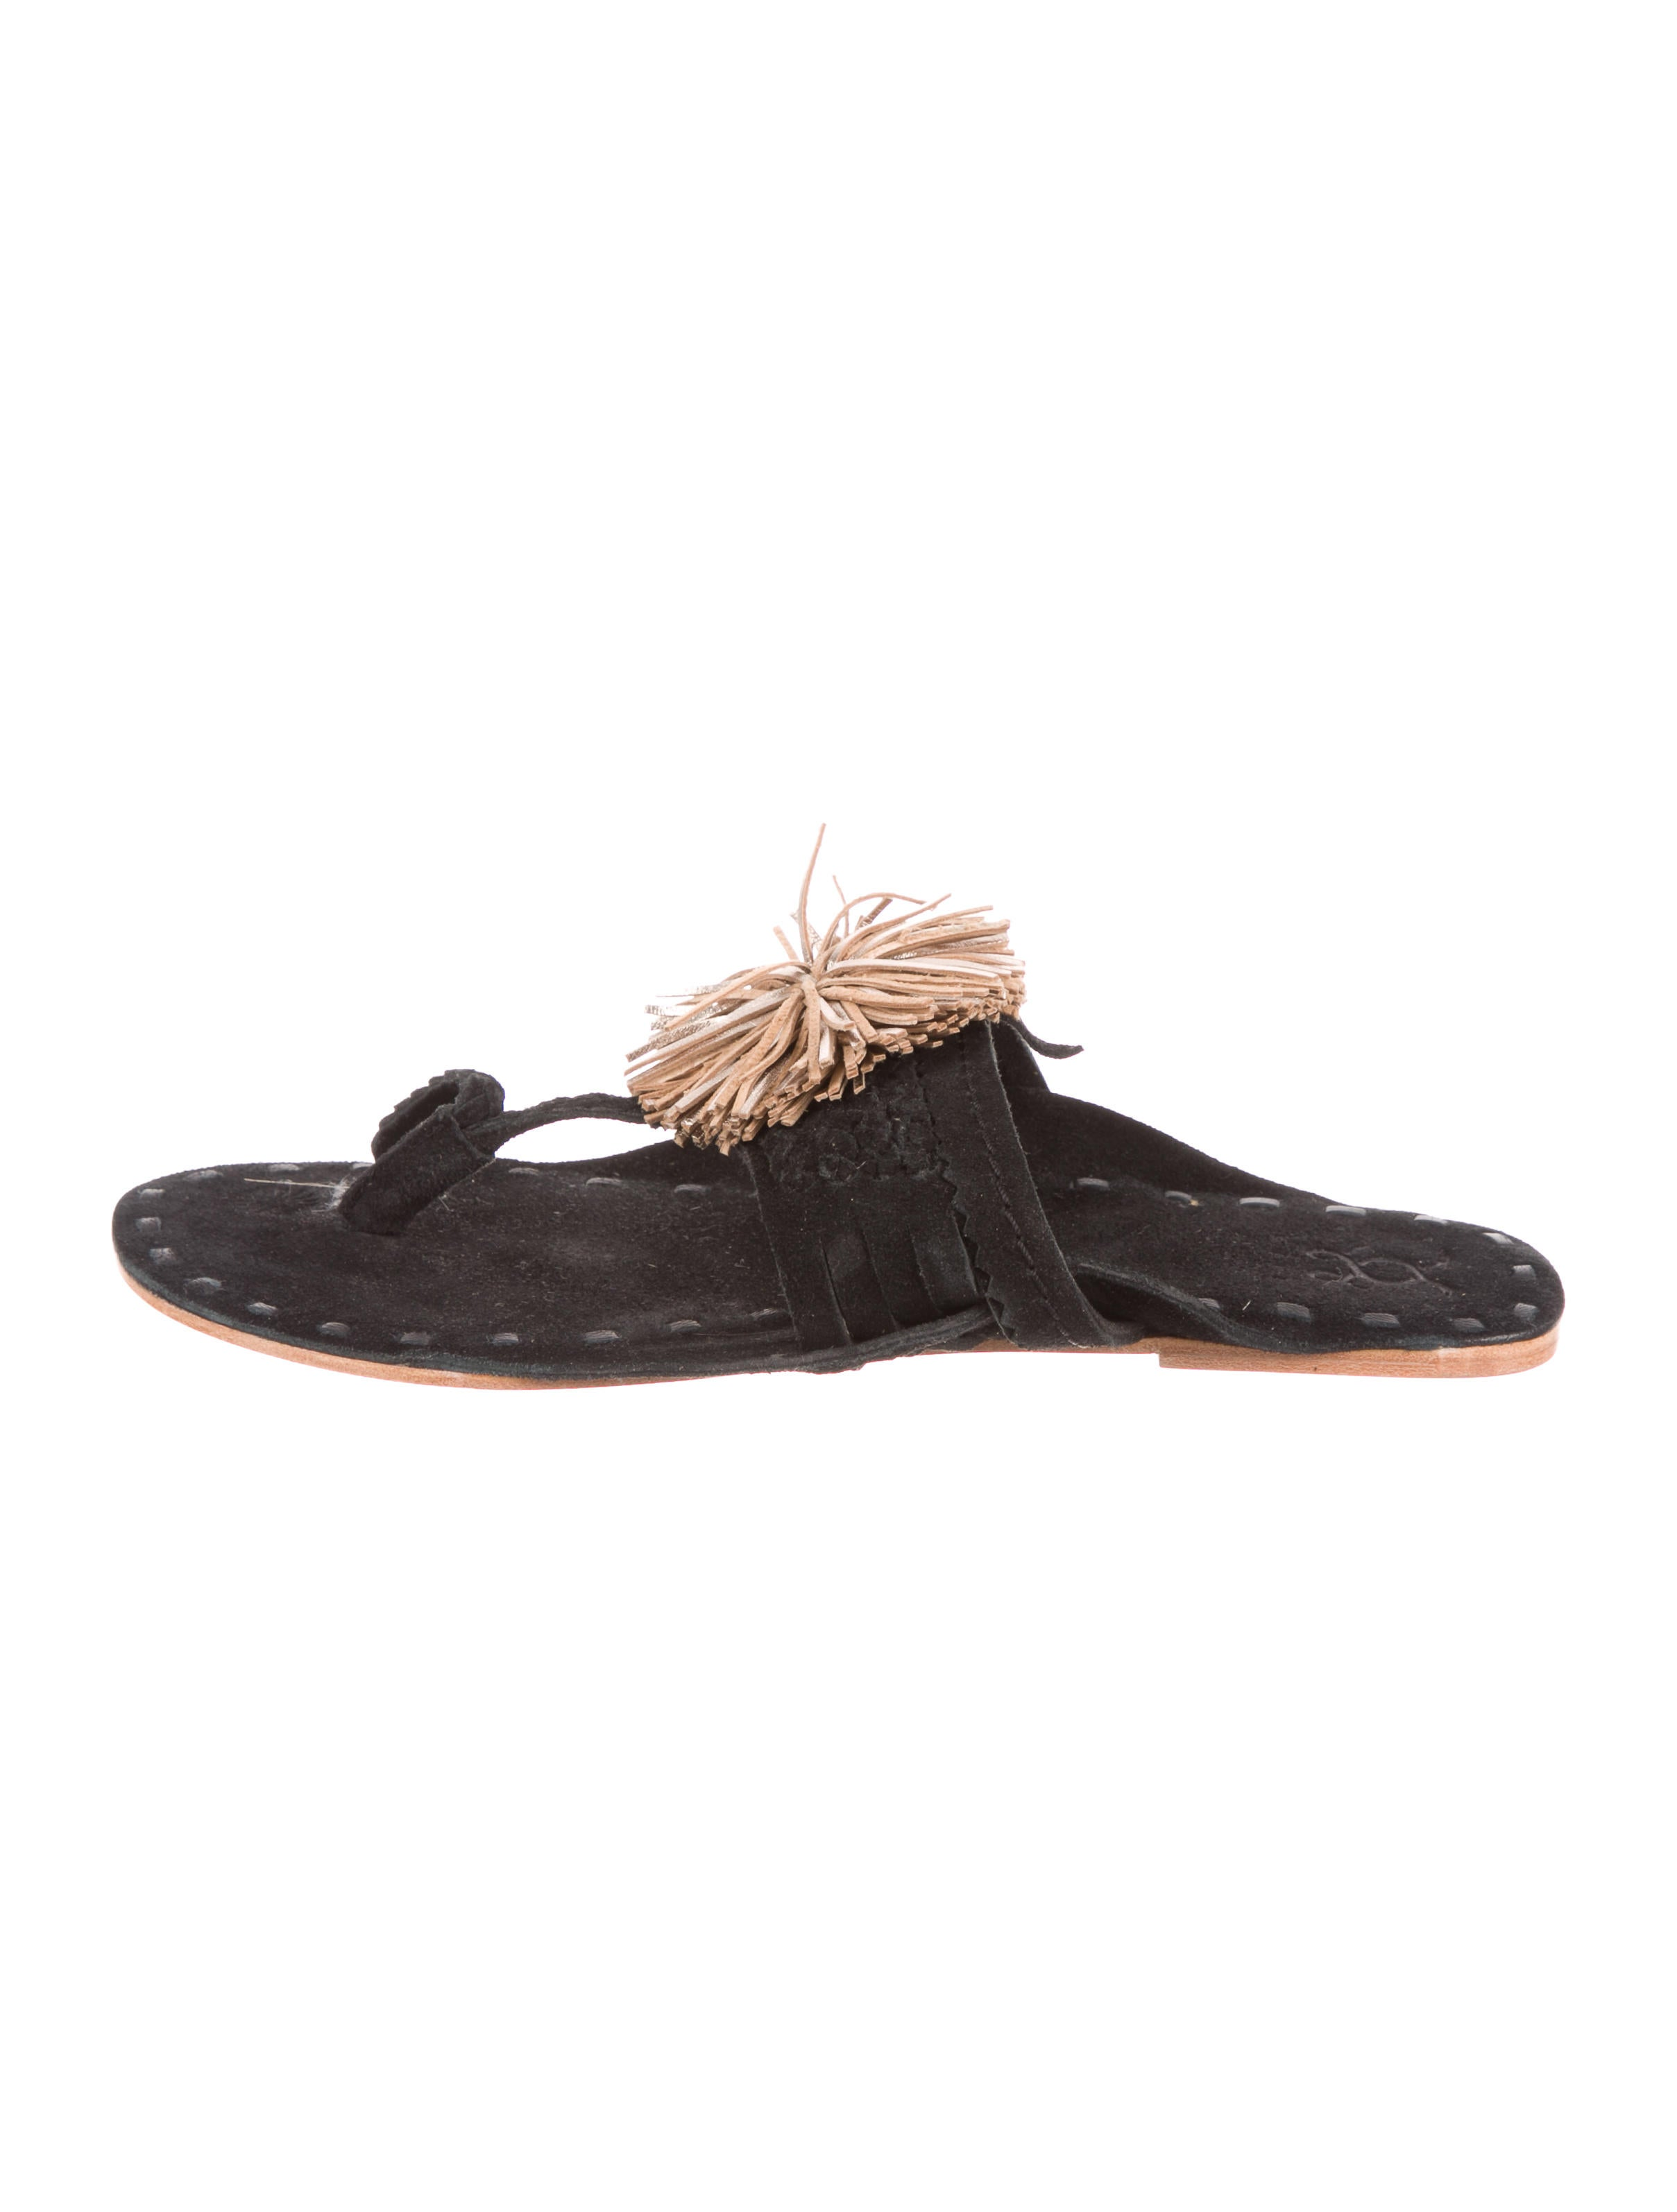 Figue Suede Thong Sandals w/ Tags 2014 for sale cheap sale best store to get 5eg7cE